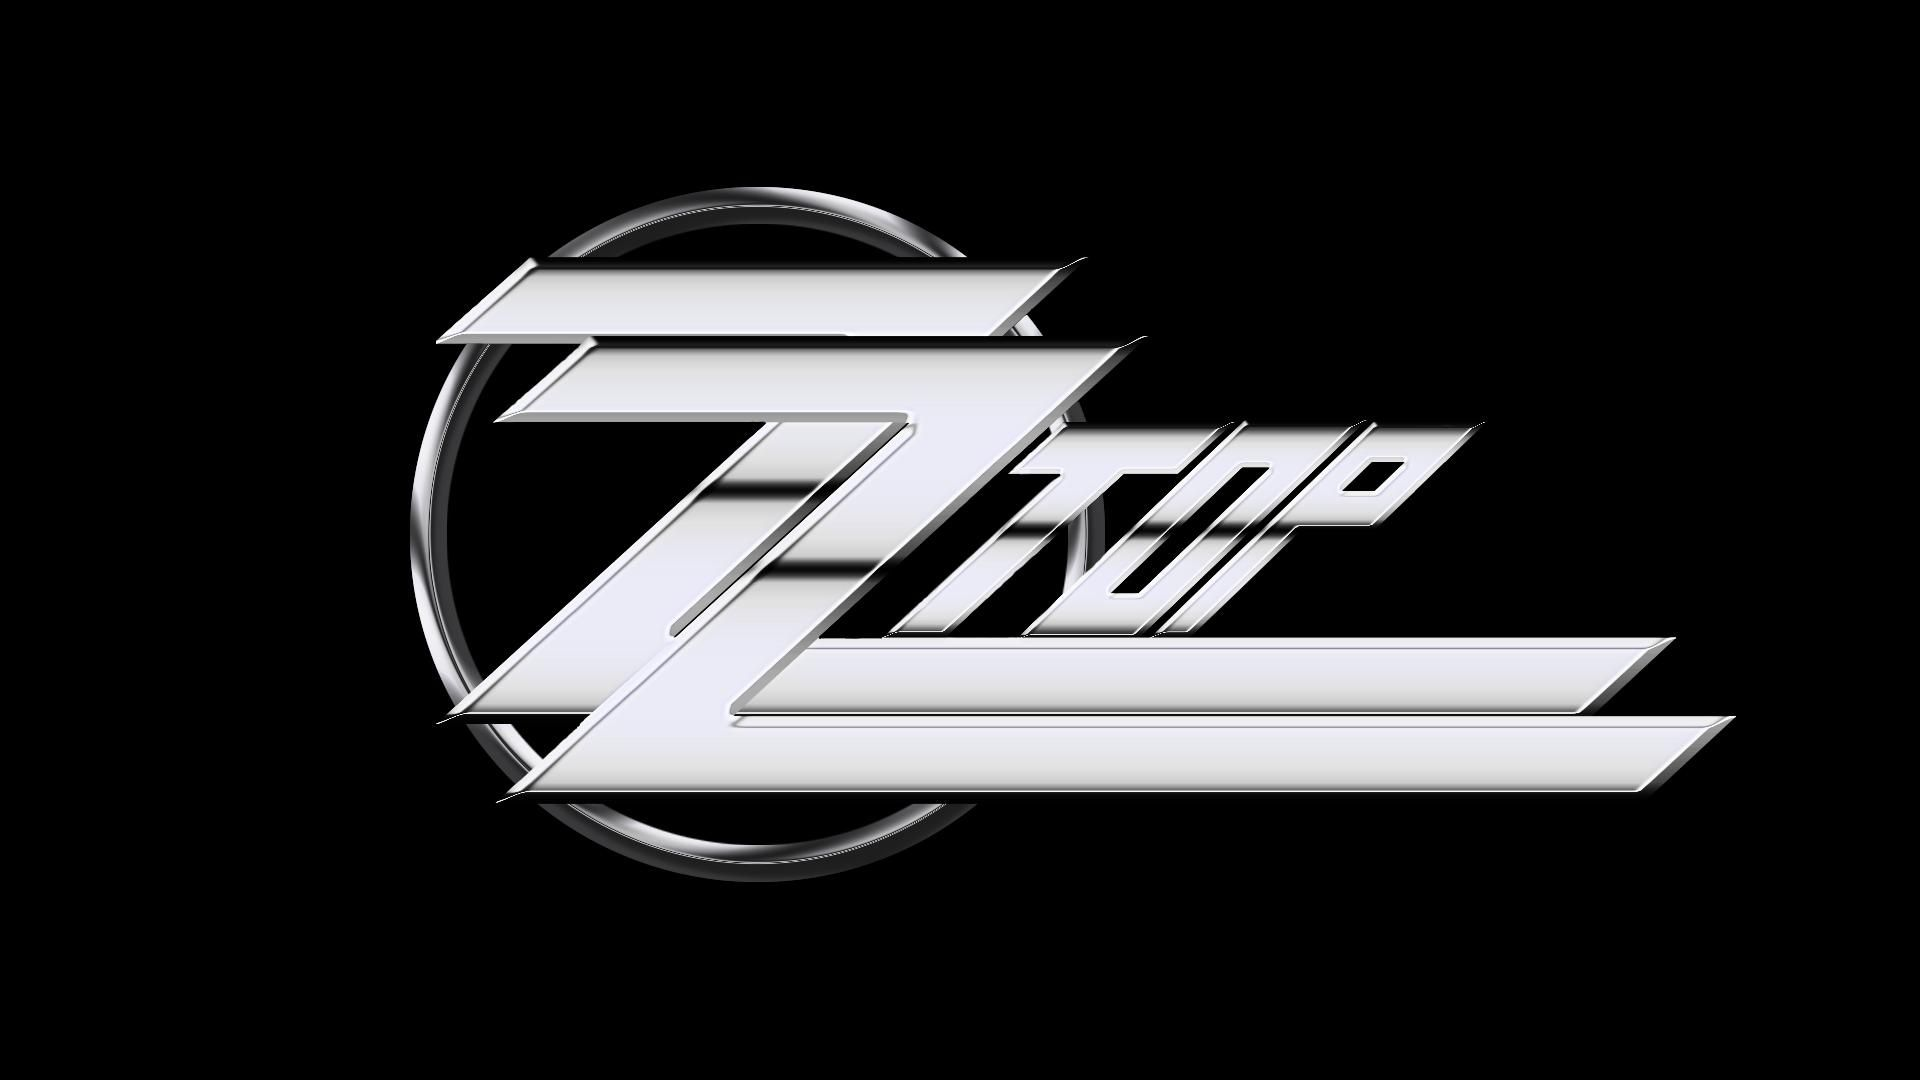 ZZ Top Logo - zz top logo - Google Search | New Logo Ideas | Zz Top, Tops, Music